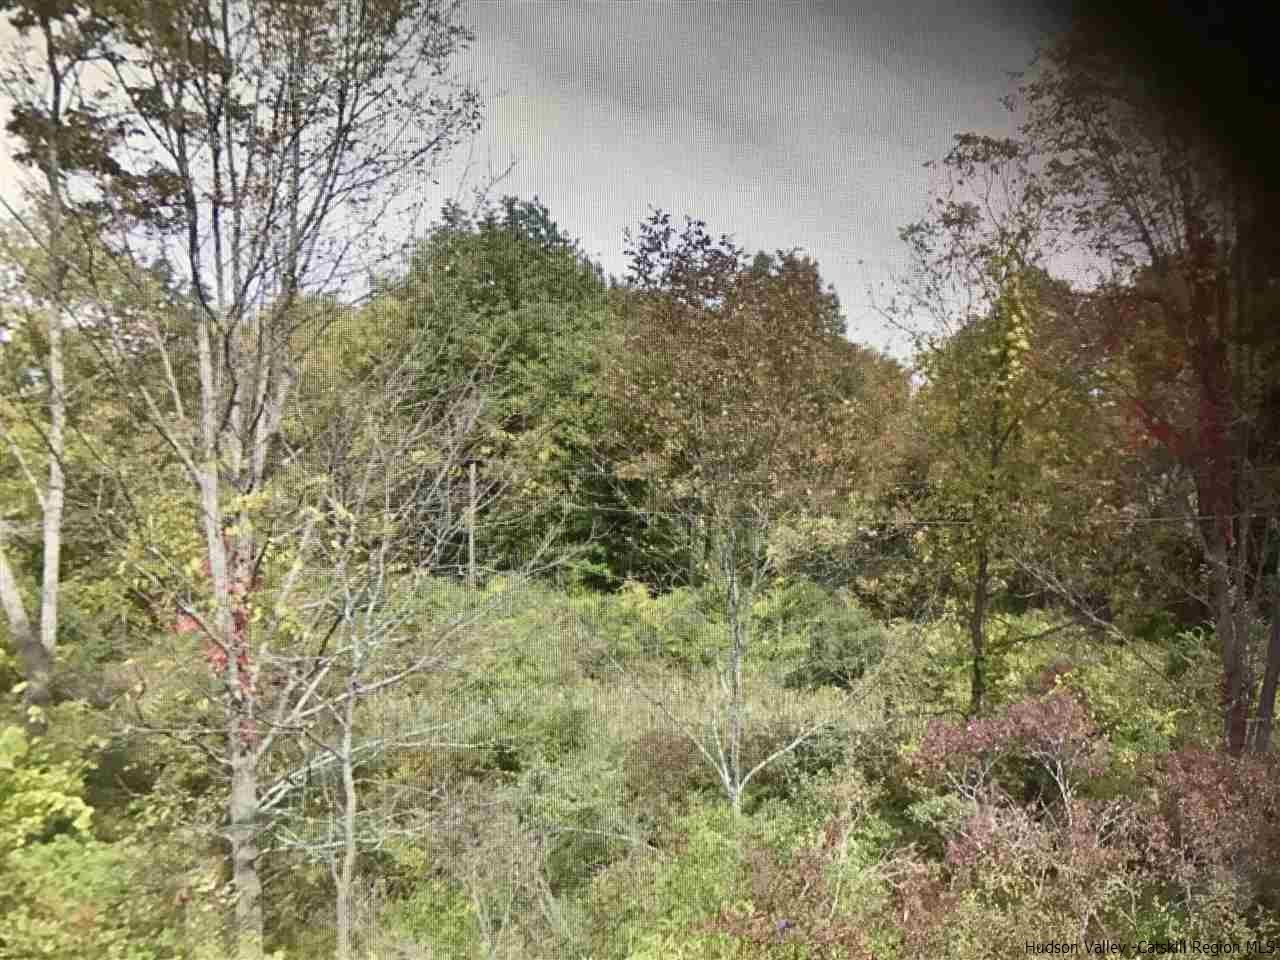 Single Family Home for Sale at 80 fishkill hook Road 80 fishkill hook Road Hopewell Junction, New York 12533 United States